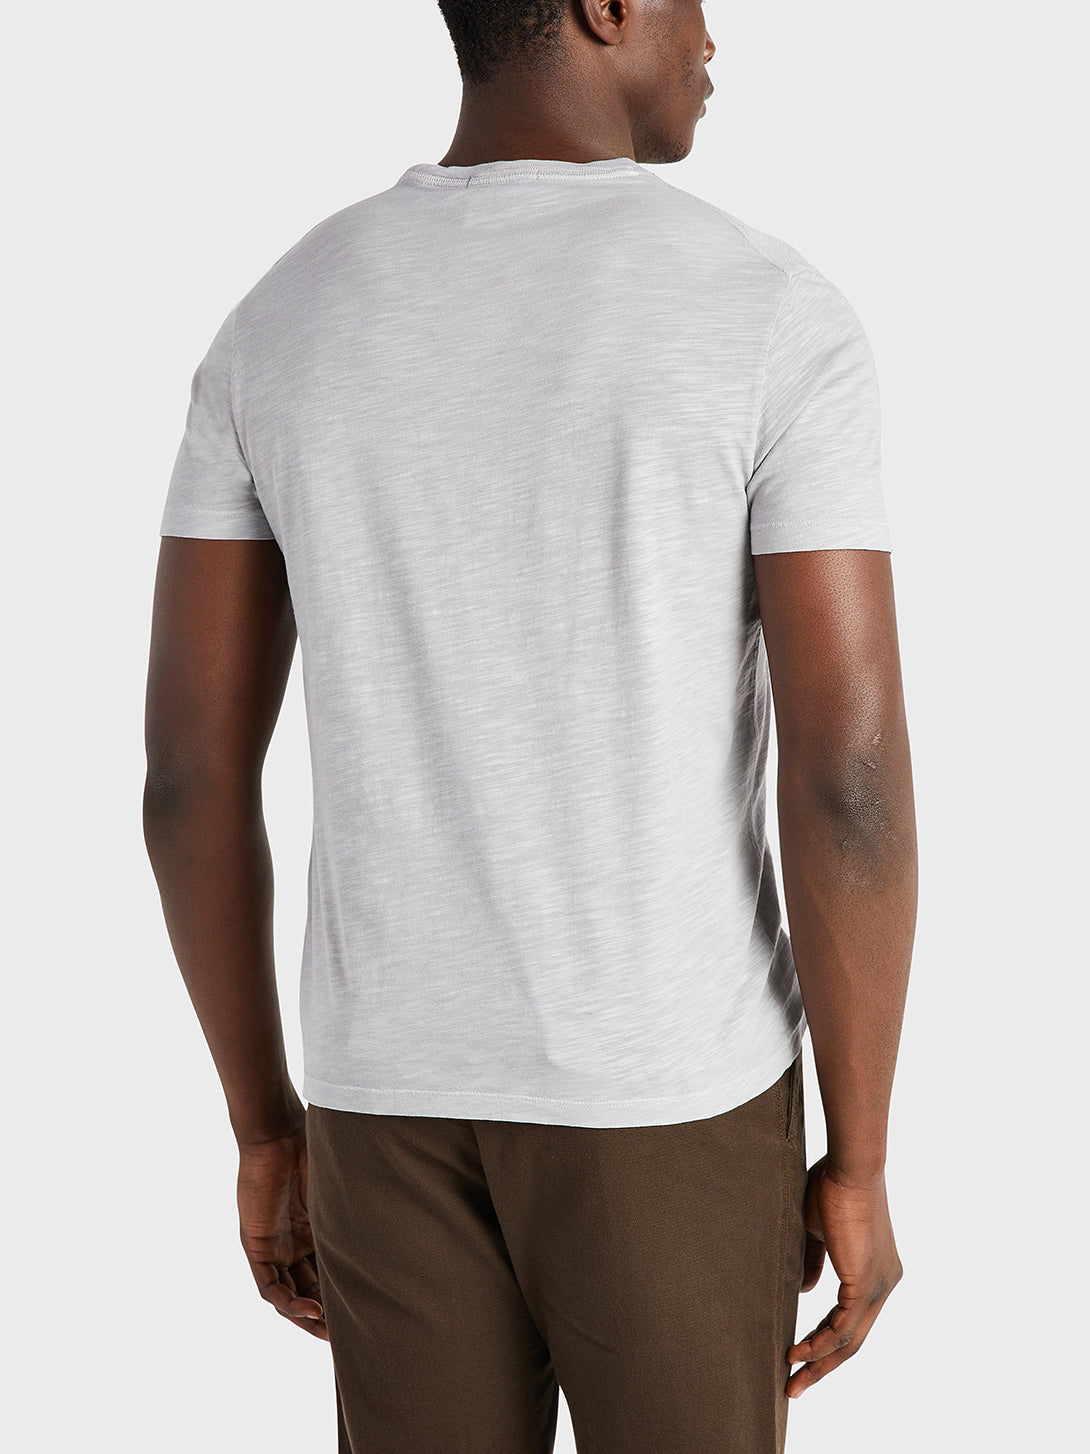 black friday deals ONS Clothing Men's tee in GREY